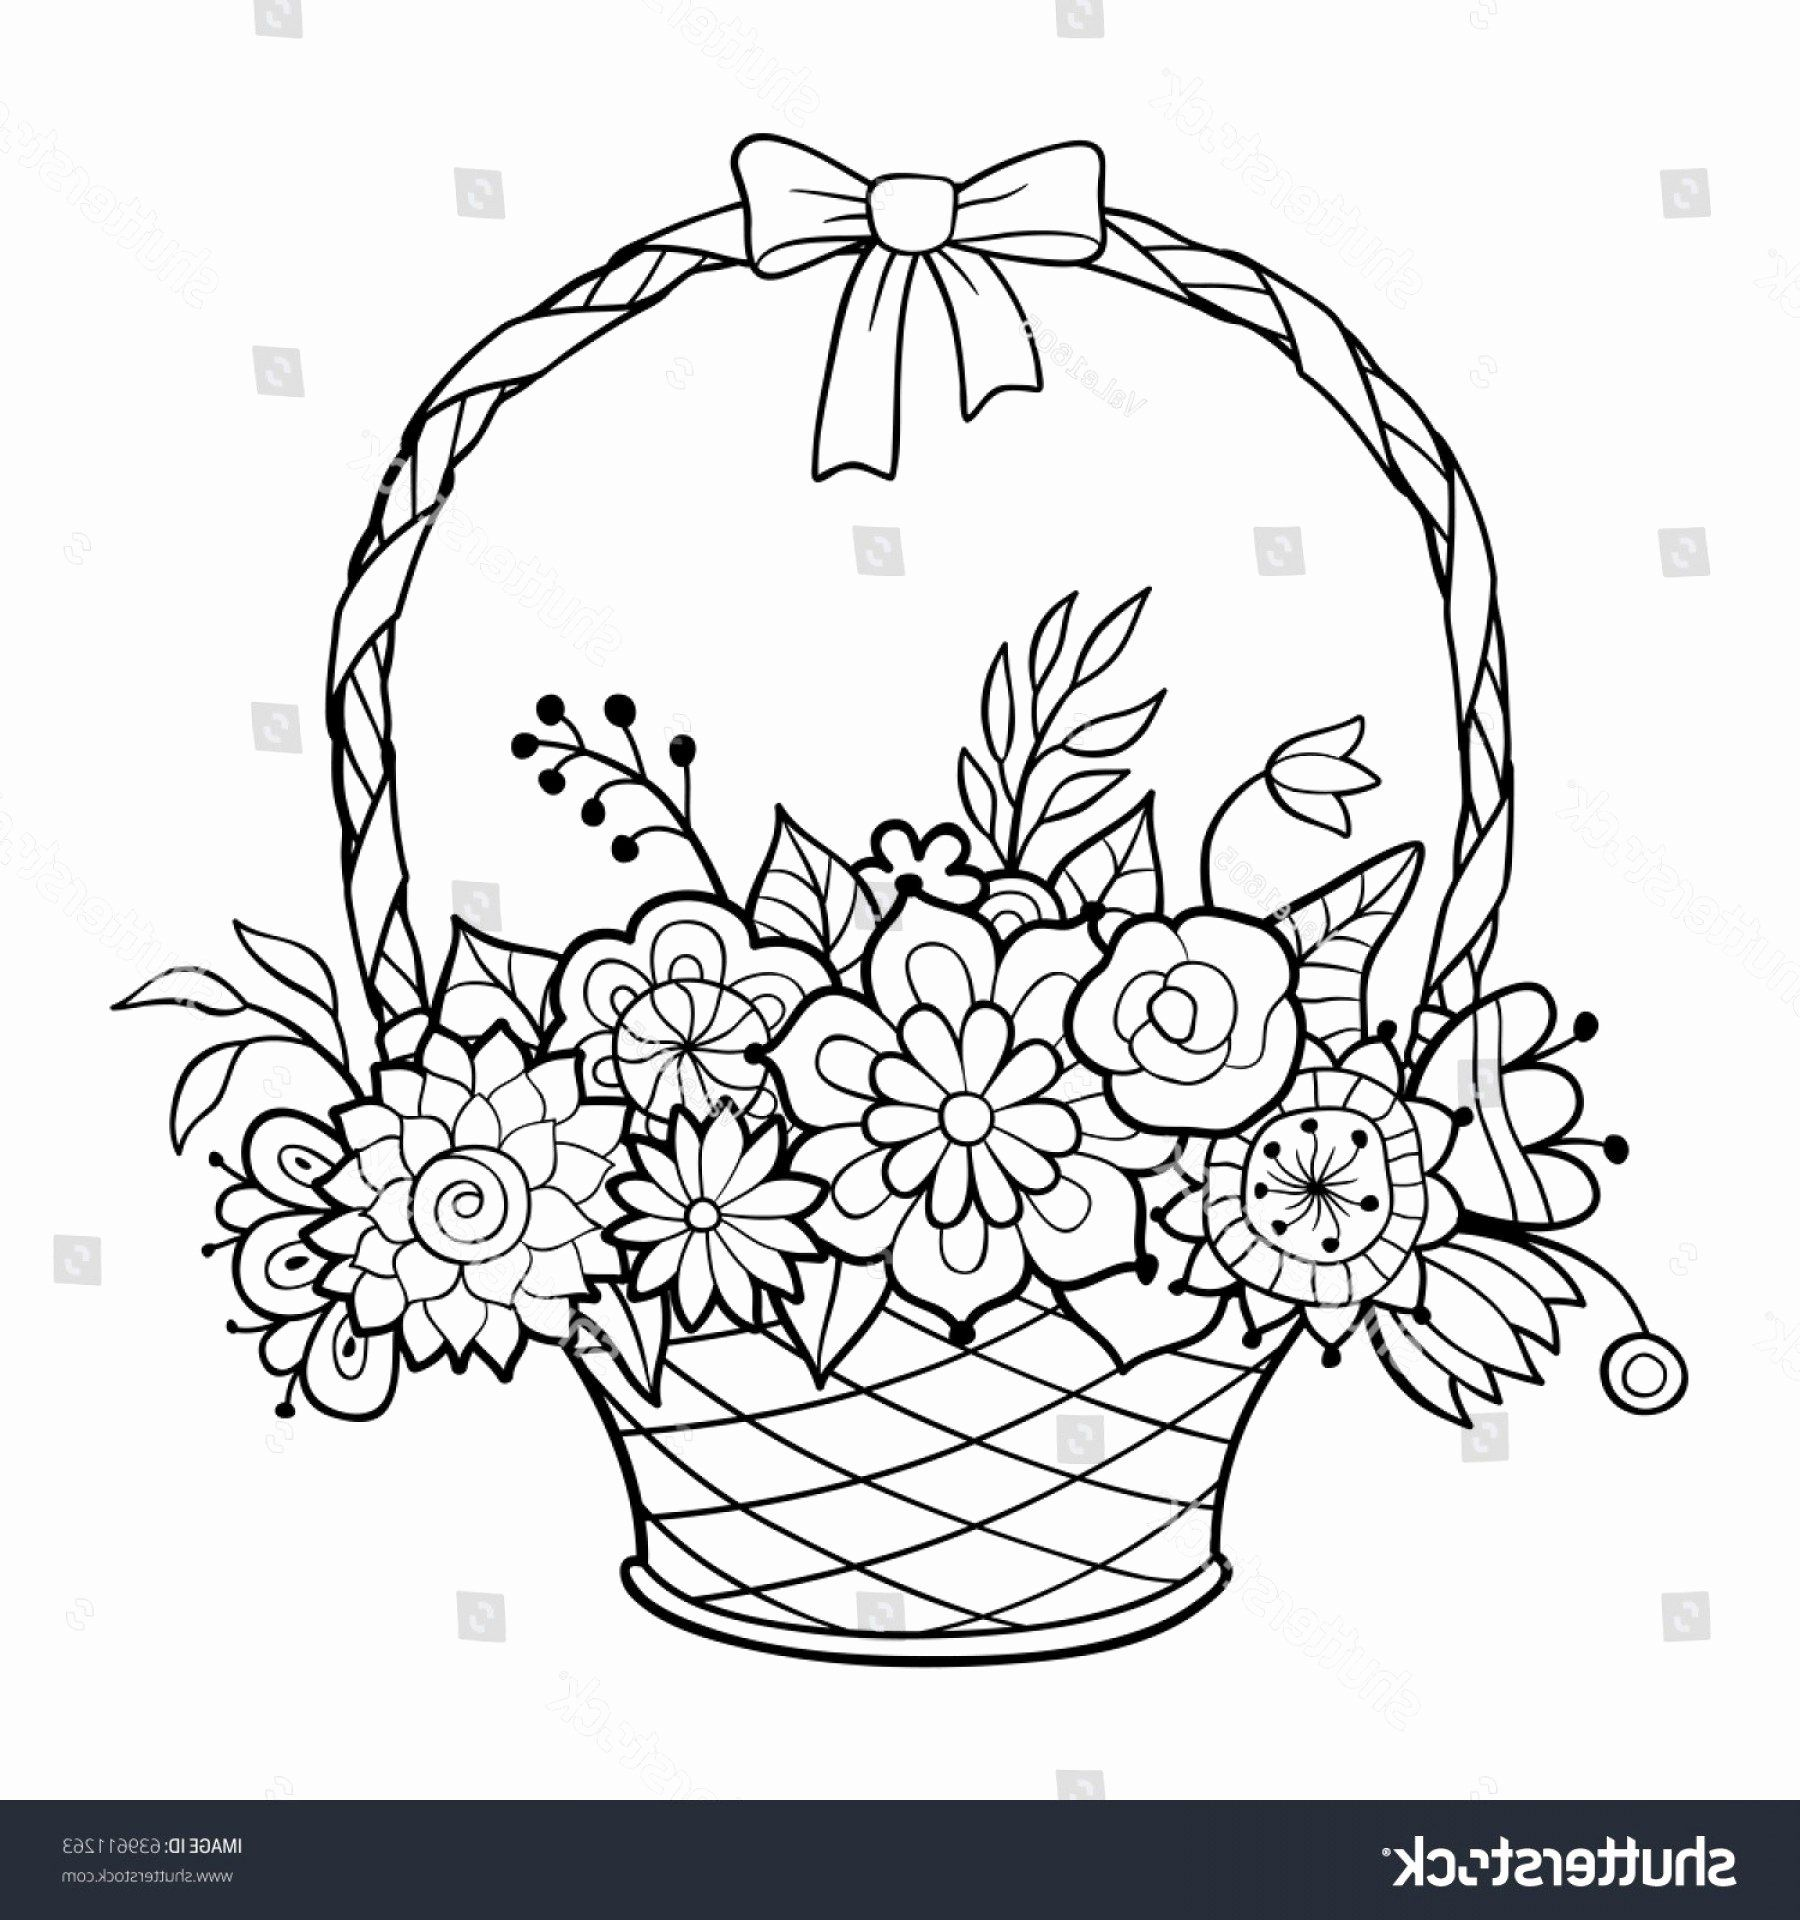 Flowers Coloring Pages Vector Awesome My Little Pony Book Vector Basket Drawing Coloring Pages Flower Coloring Pages